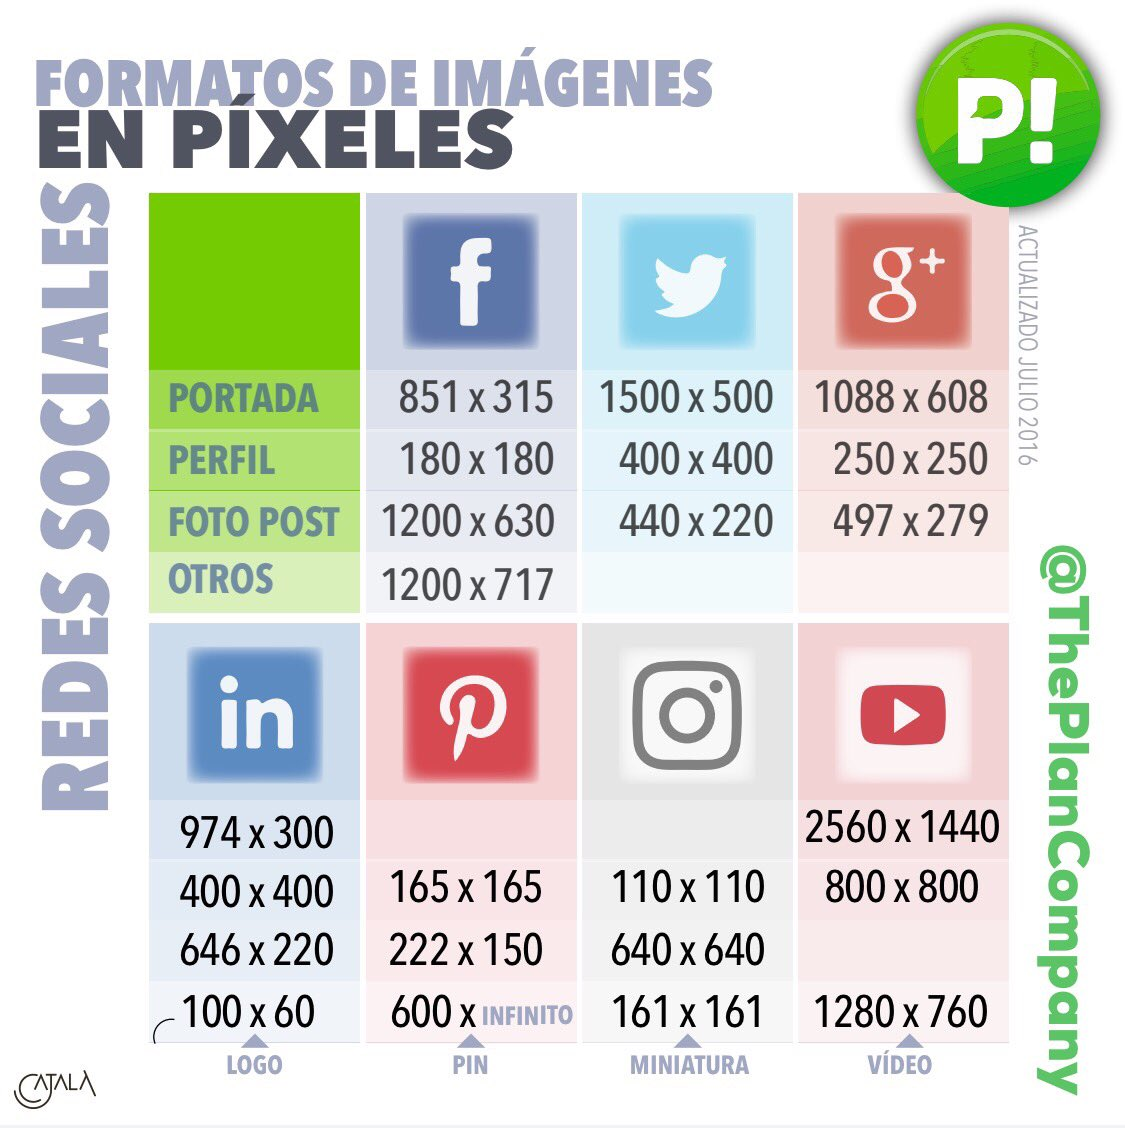 Medidas óptimas de imágenes para #RedesSociales By @ThePlanCompany #socialmedia #smm #rrhh #marketingdigital #seo https://t.co/KupOPmH8qY